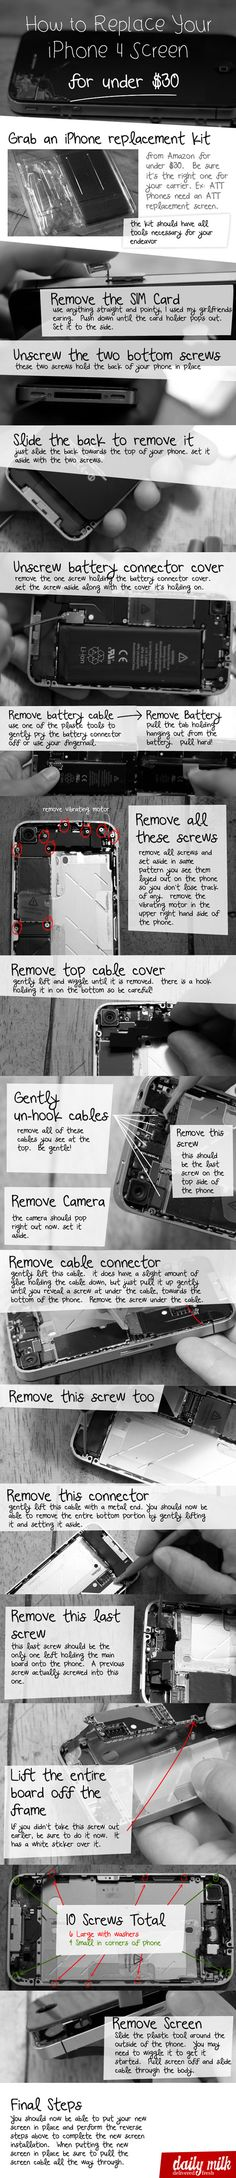 How to replace iPhone screen for under 30! I wish I knew this 3 phones ago!